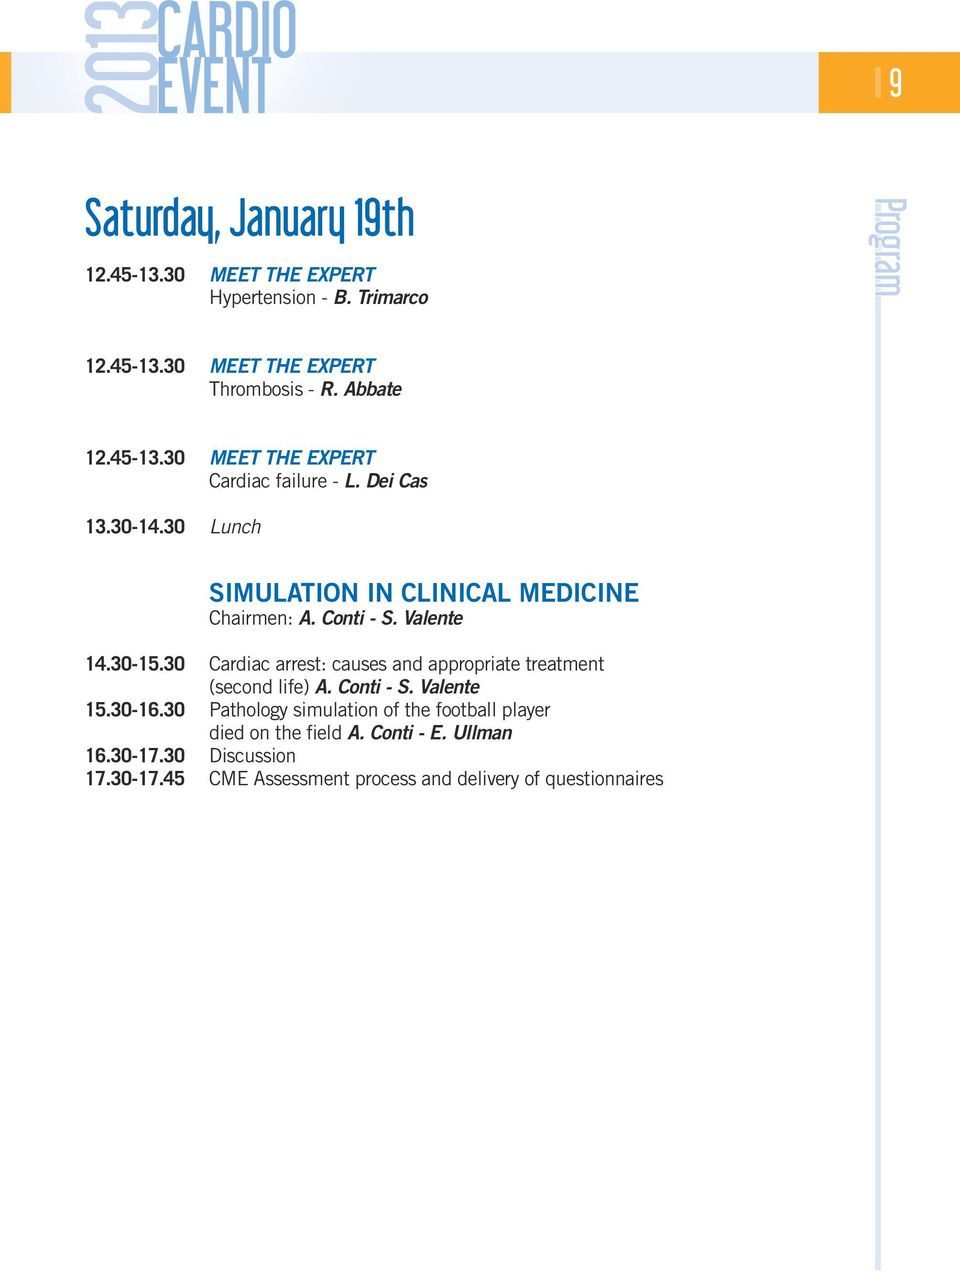 Valente 14.30-15.30 Cardiac arrest: causes and appropriate treatment (second life) A. Conti - S. Valente 15.30-16.